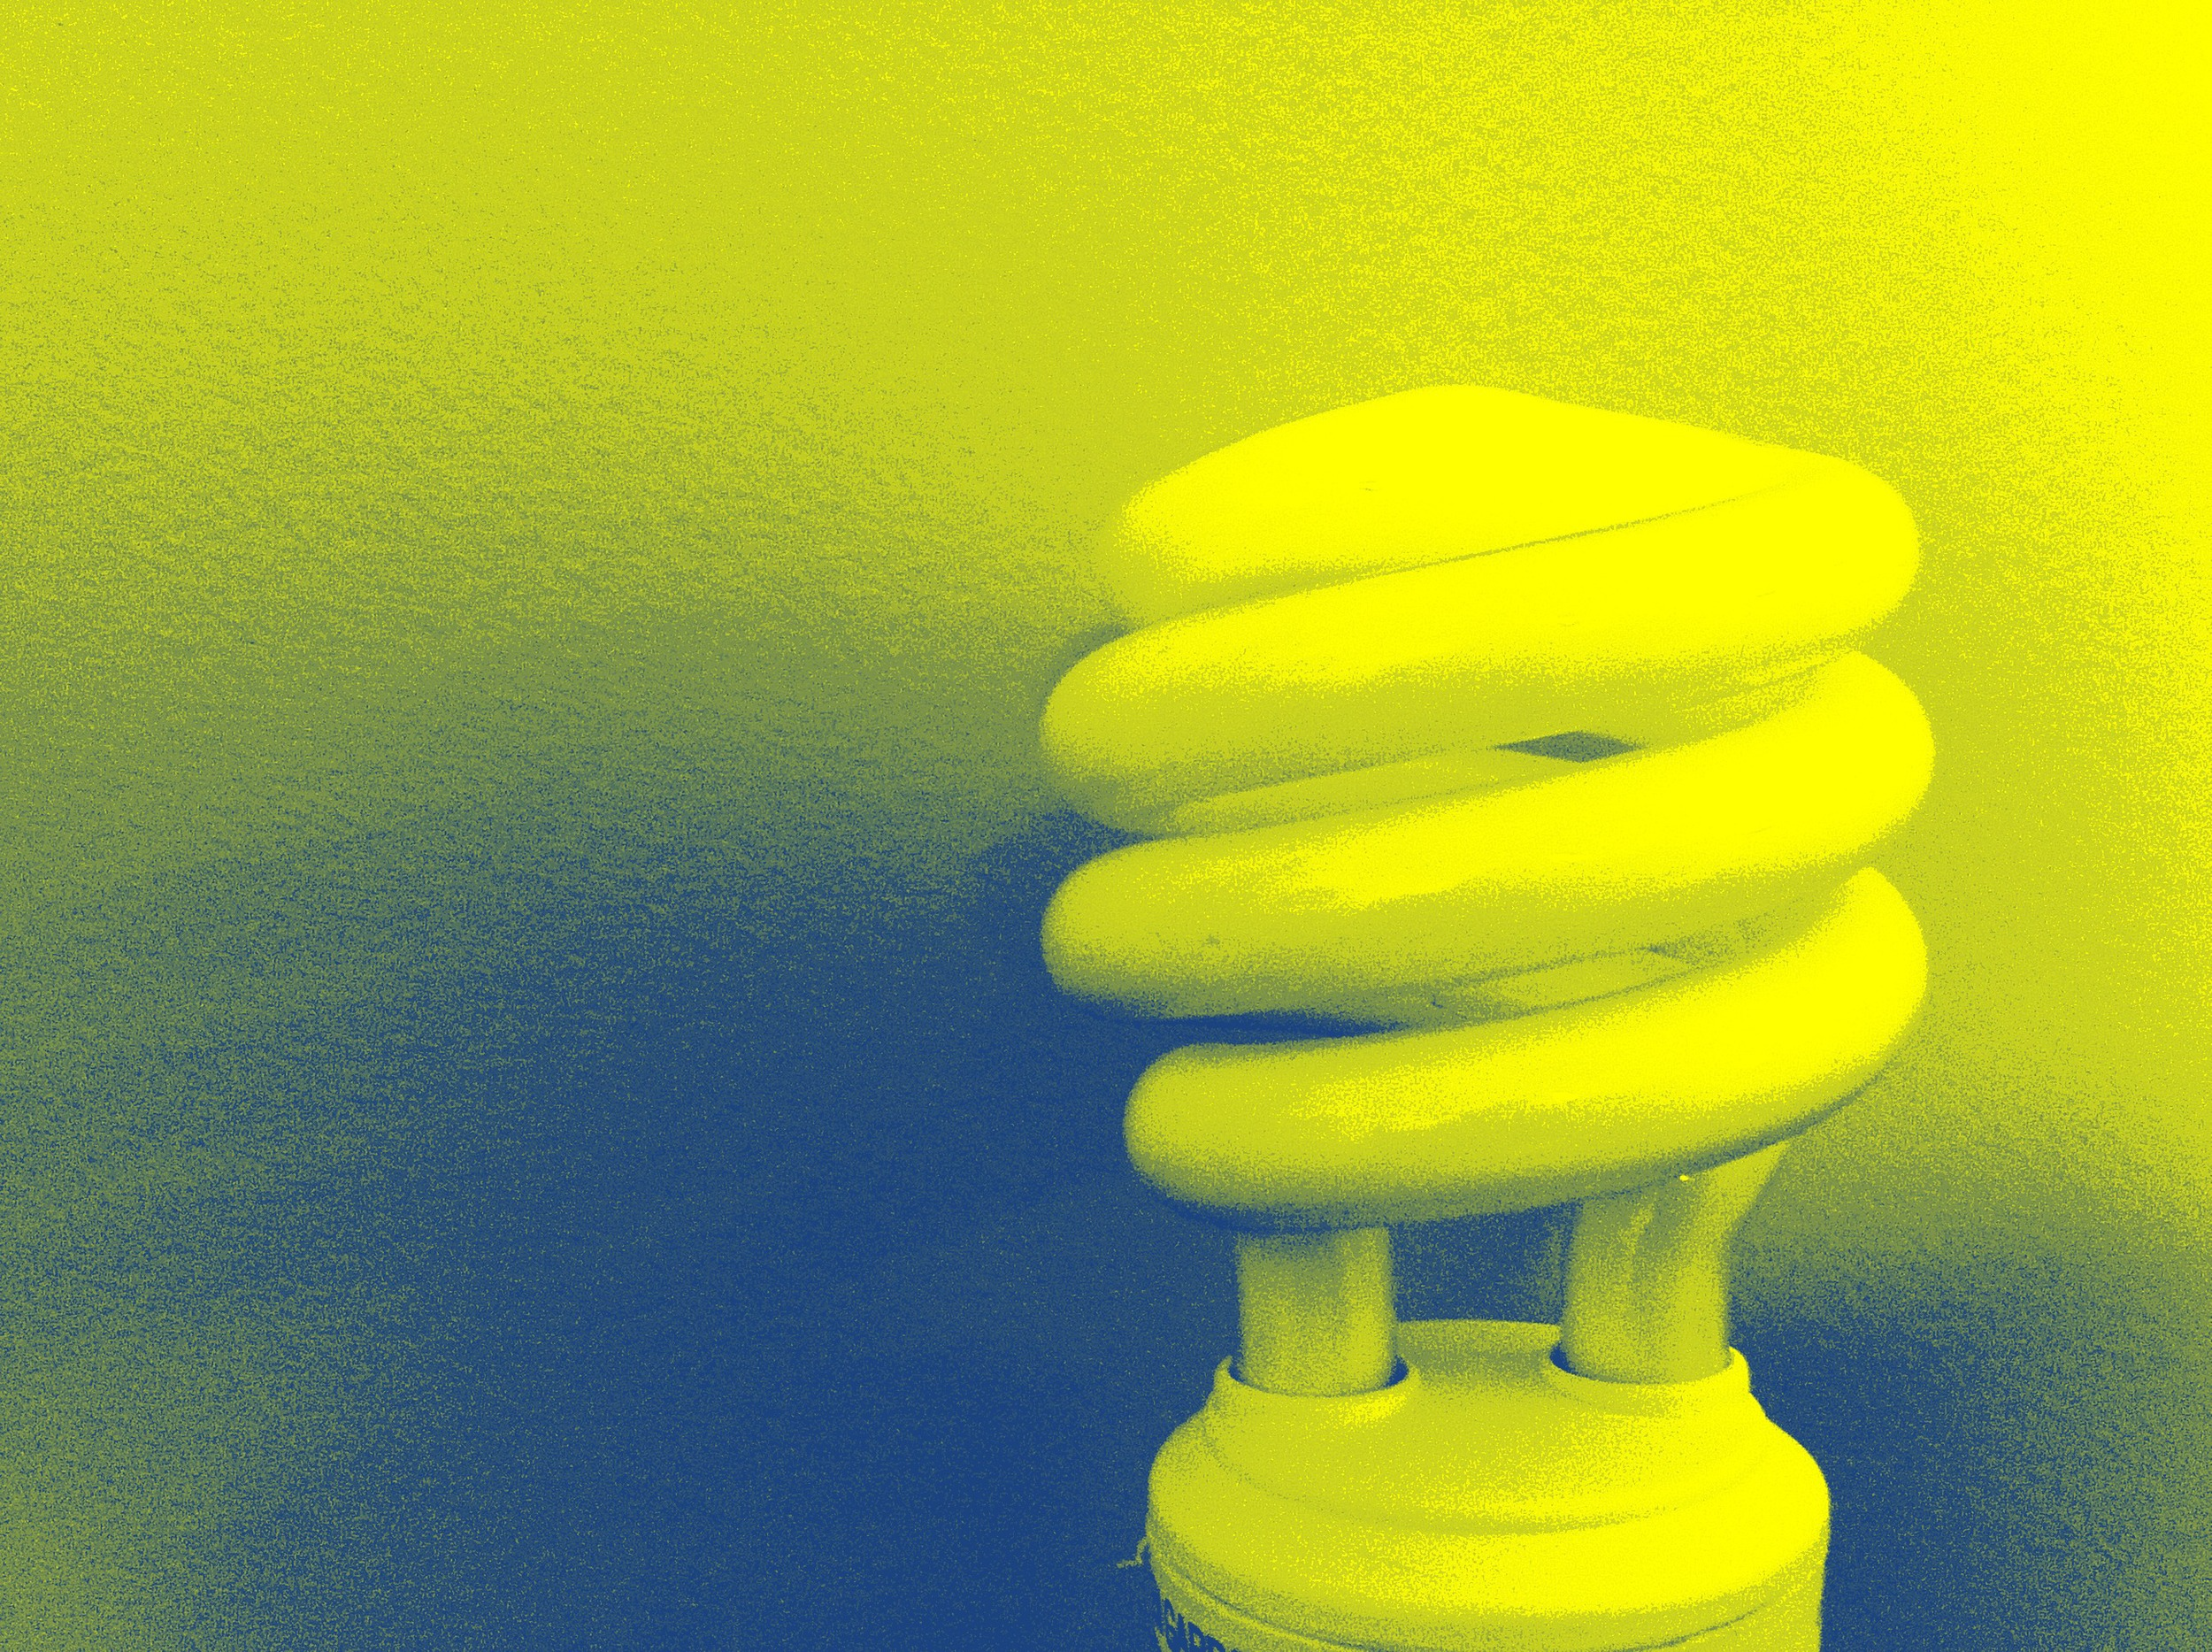 bl_light_bulb_blue_yellow